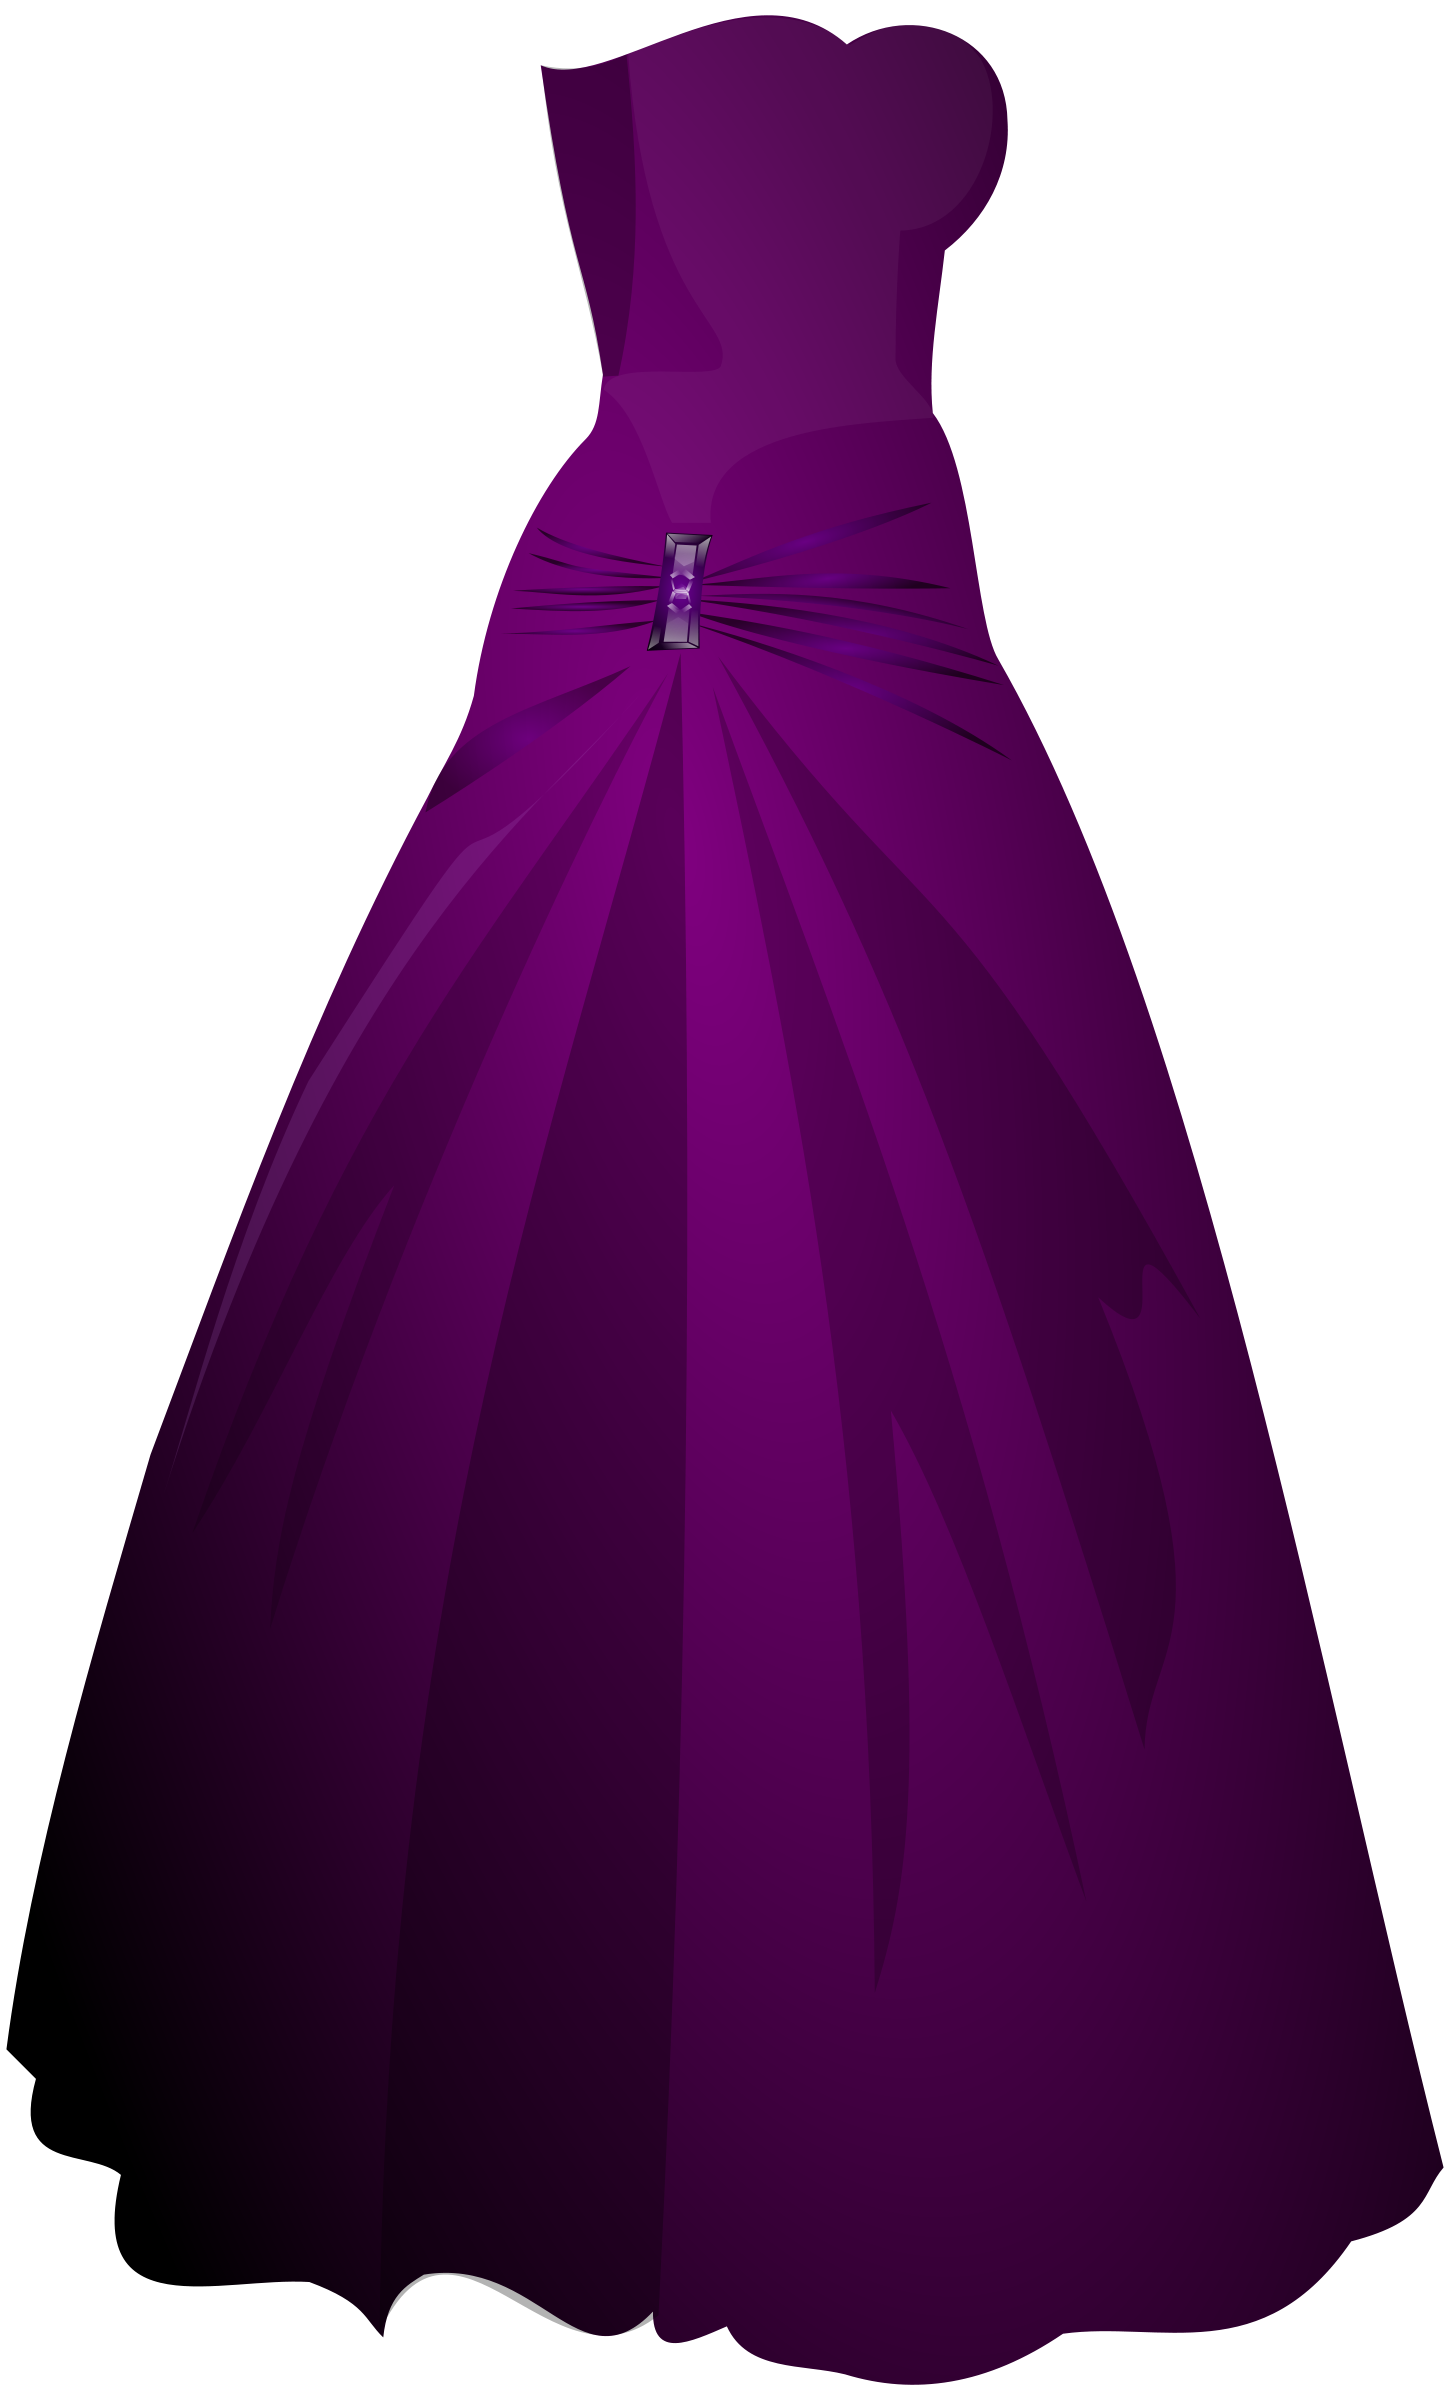 Formal dresses clipart.